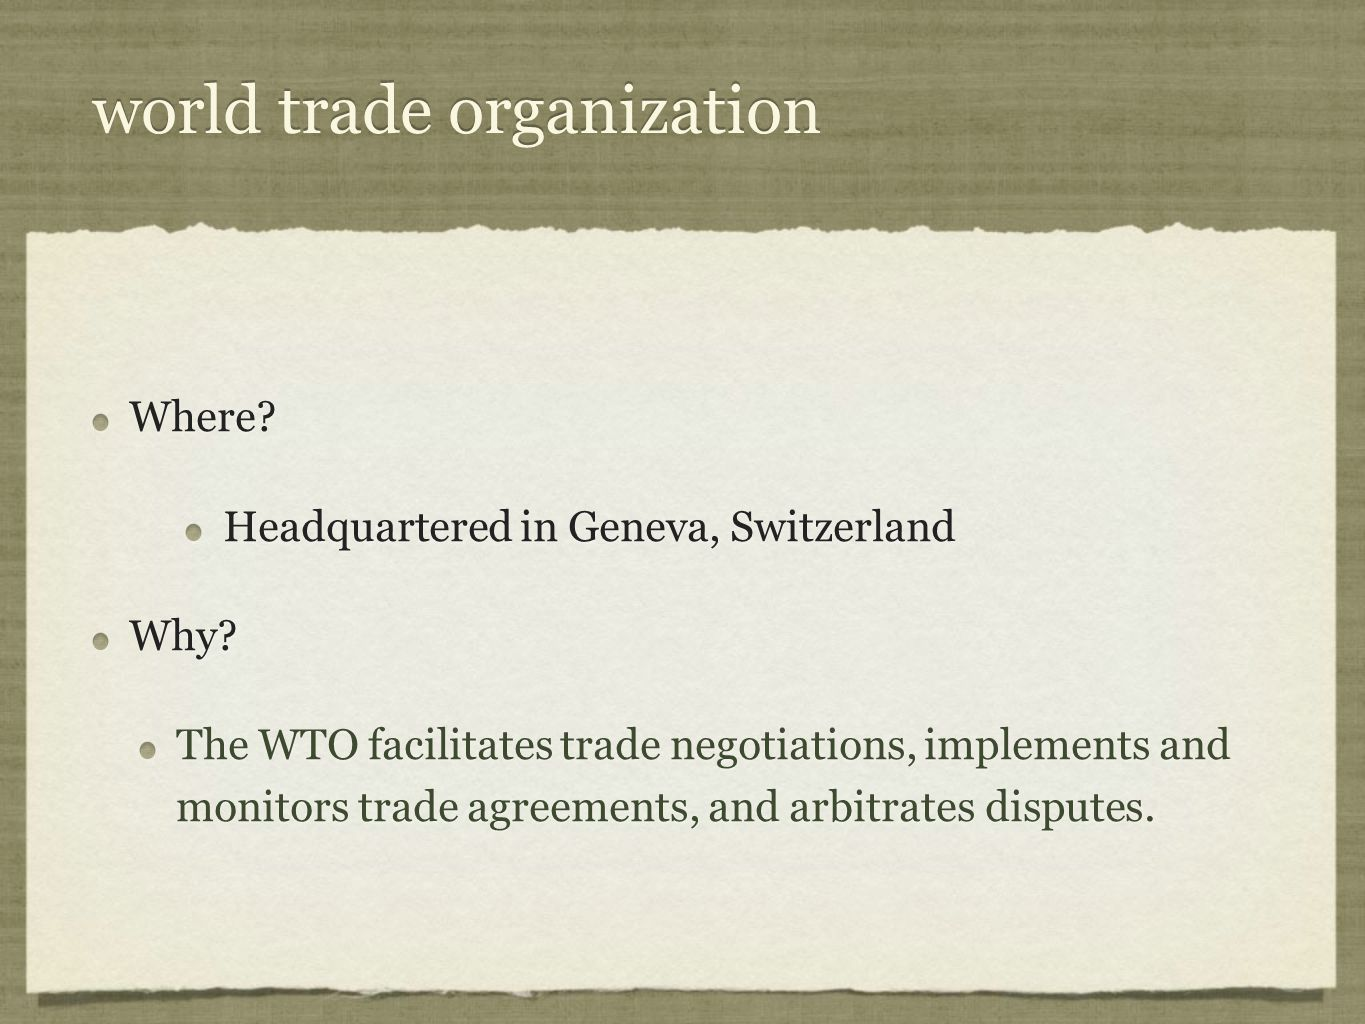 world trade organization Where? Headquartered in Geneva, Switzerland Why? The WTO facilitates trade negotiations, implements and monitors trade agreem